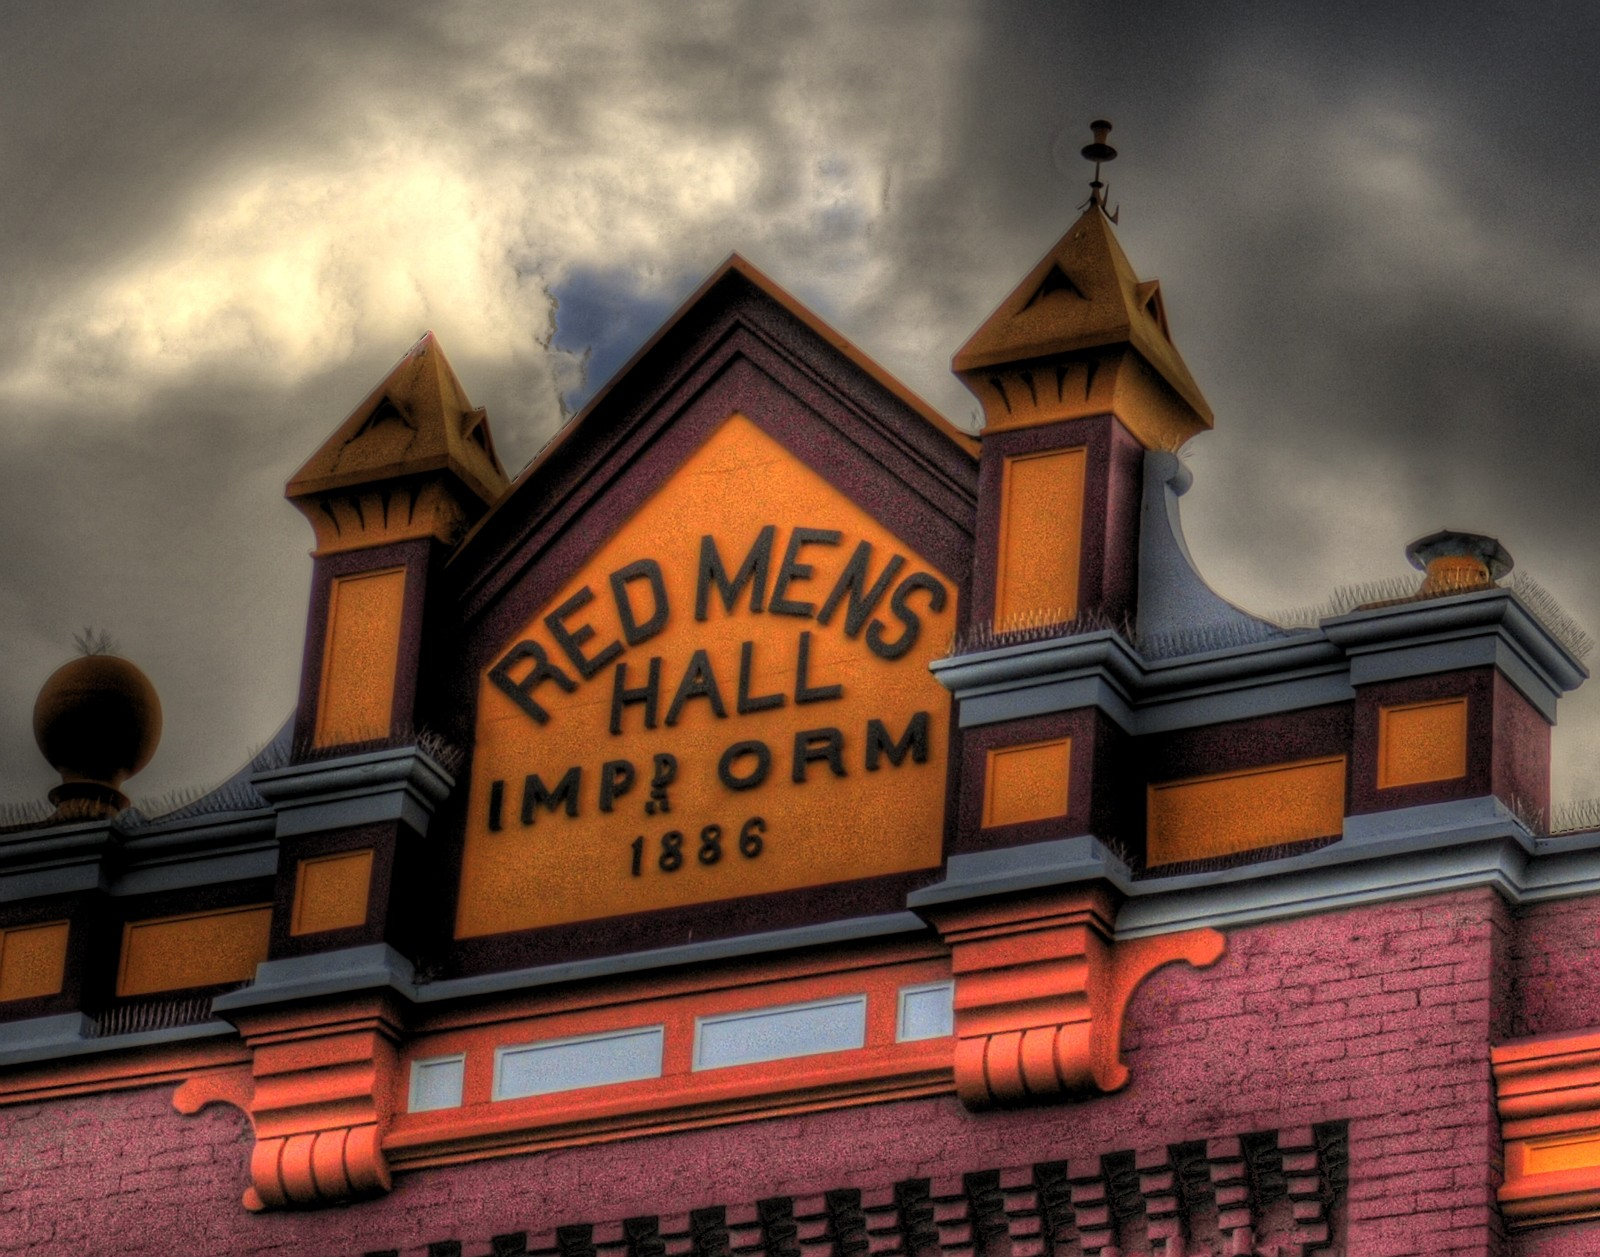 red-mens-hall-hdr-14